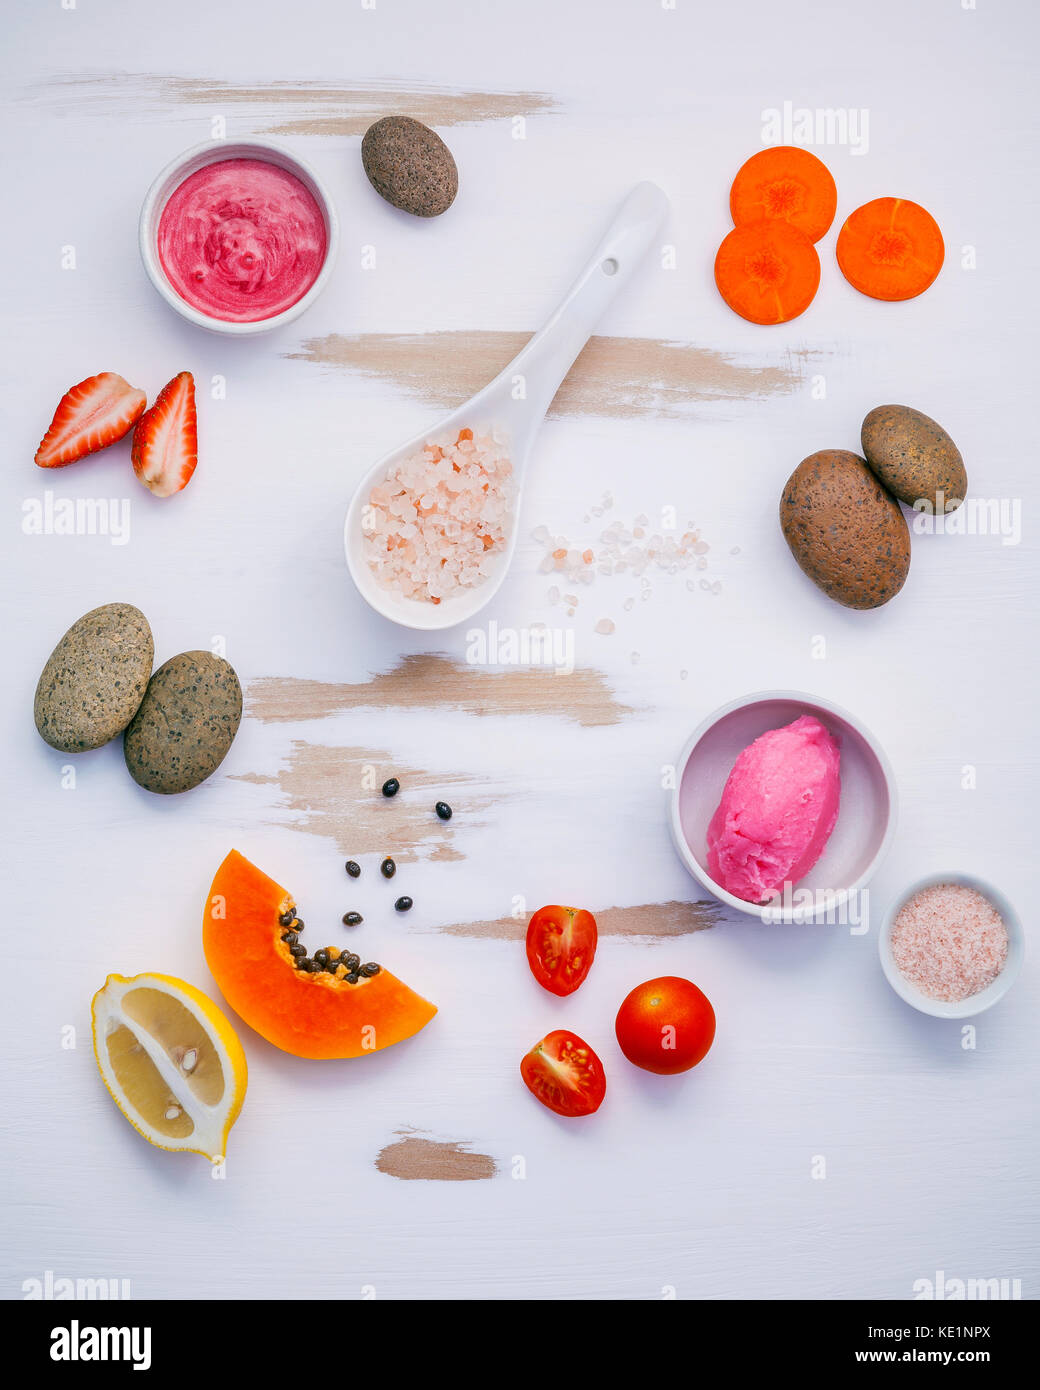 Homemade skin care and body scrubs with red natural ingredients strawberry , tomato ,himalayan salt, ripe papaya, - Stock Image